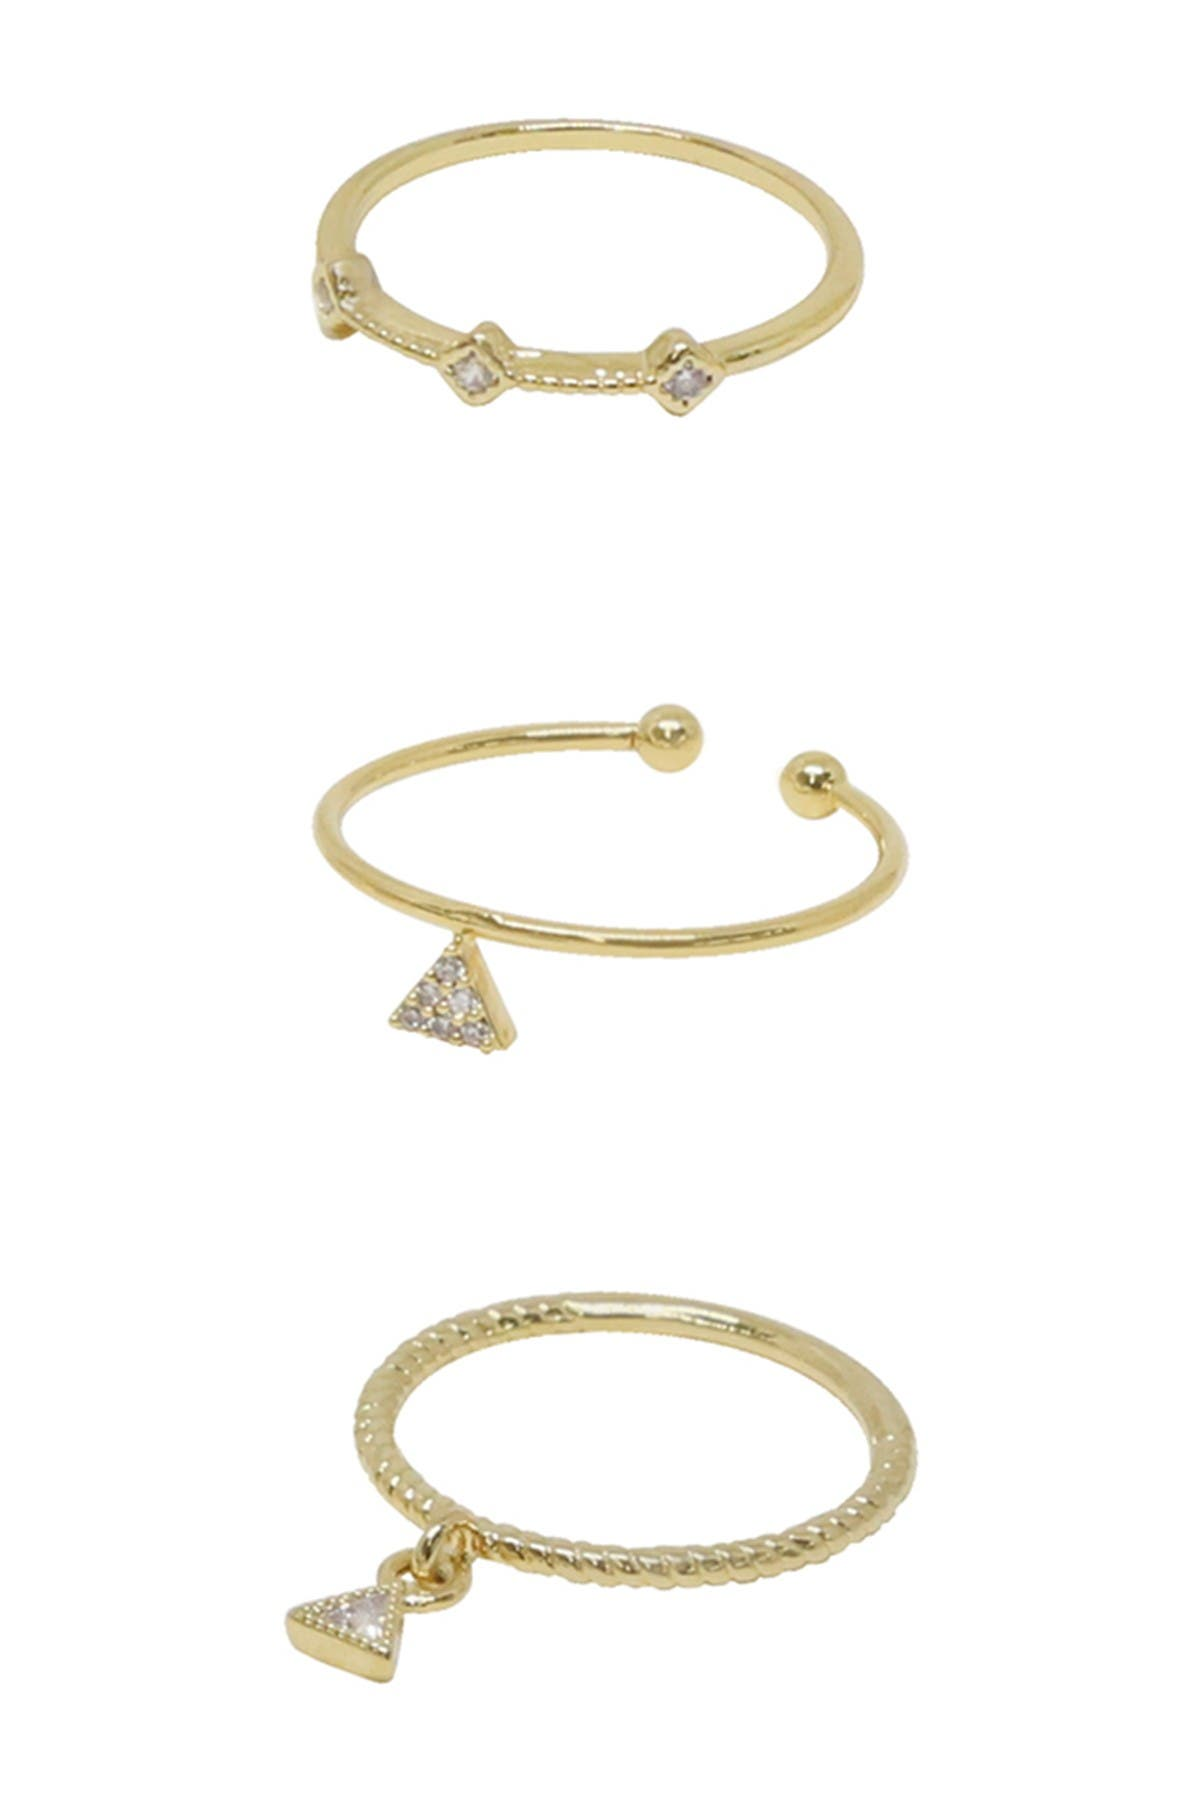 Image of Ettika 18K Gold Plated CZ Crystal Rings - Set of 3